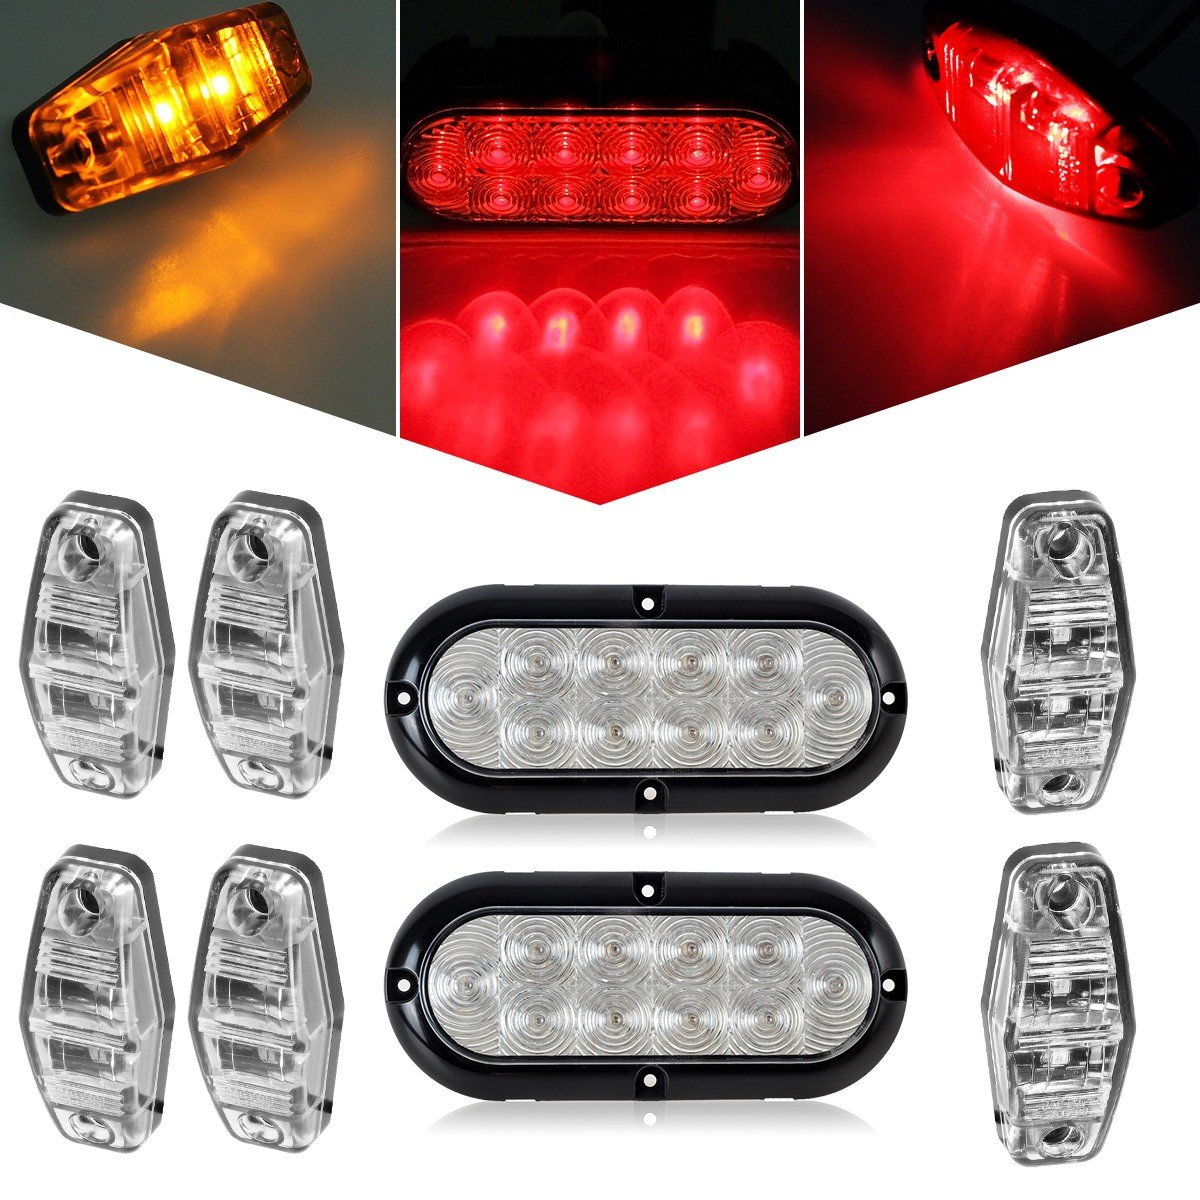 60off Partsam Led Trailer Light Kit 2x 6 Oval Clear Lens Stop Also Tail Lights Along With Wiring